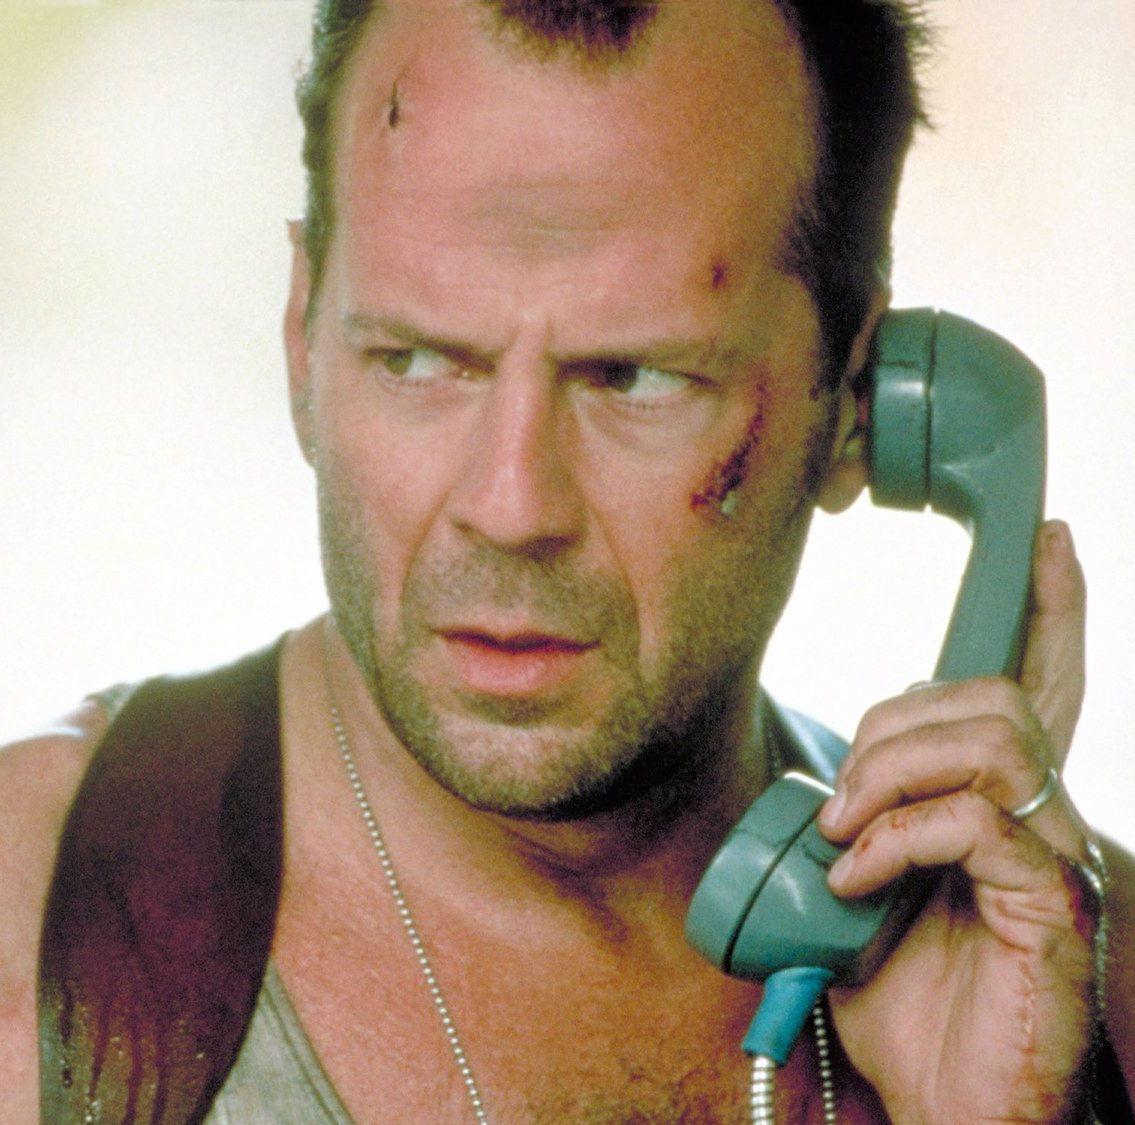 die hard 2 e1579090007502 20 Movies That Are Actually Way Better Than The Books They're Based On